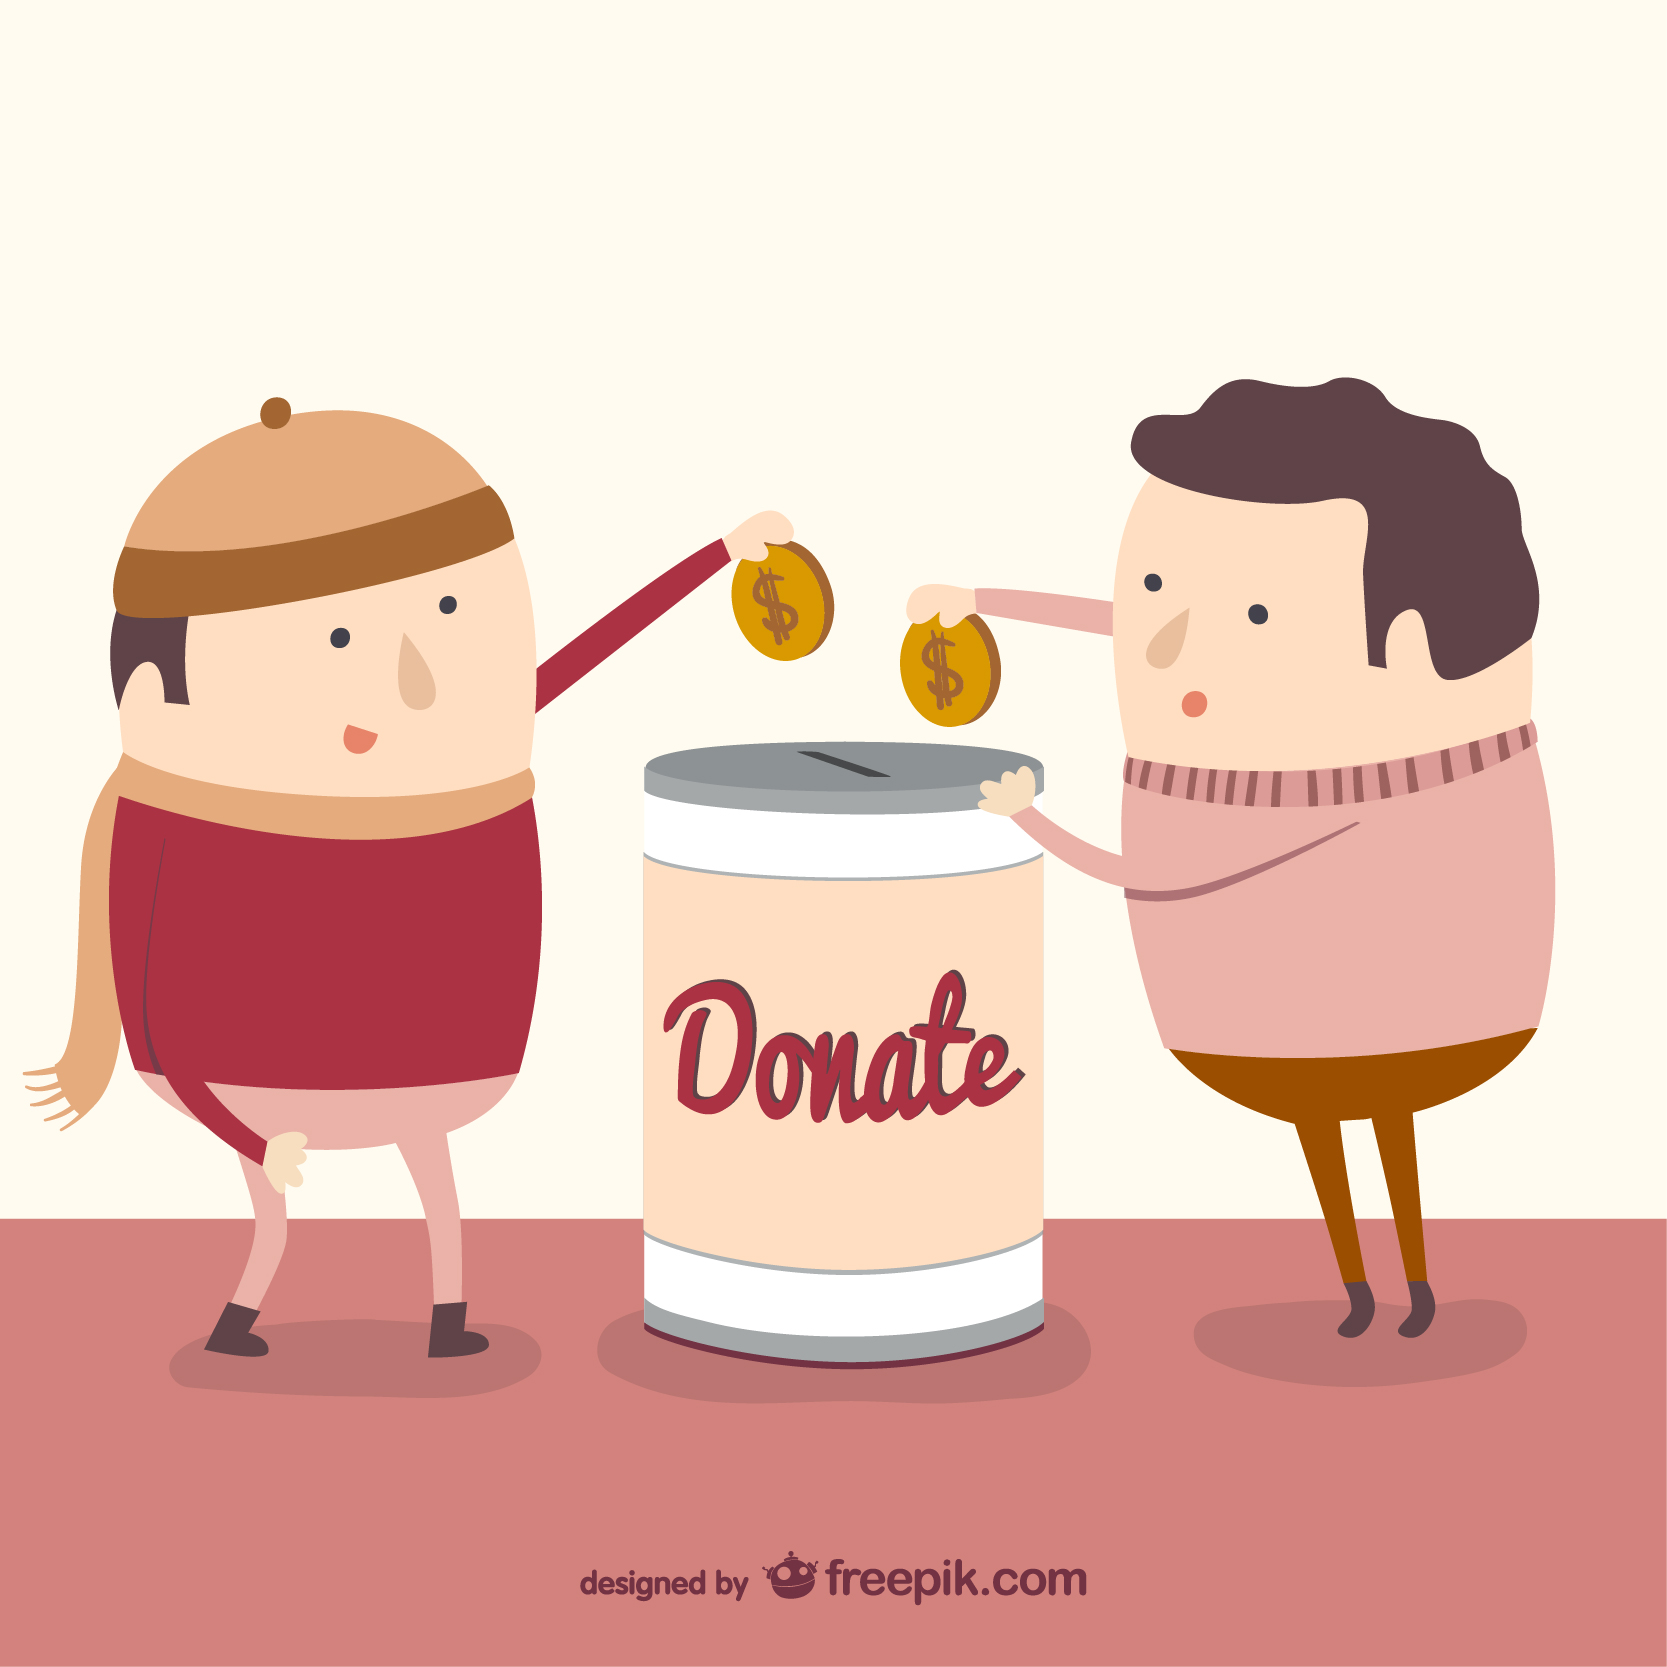 Online Donations - If you want to donate online, just click the PayPal button here: